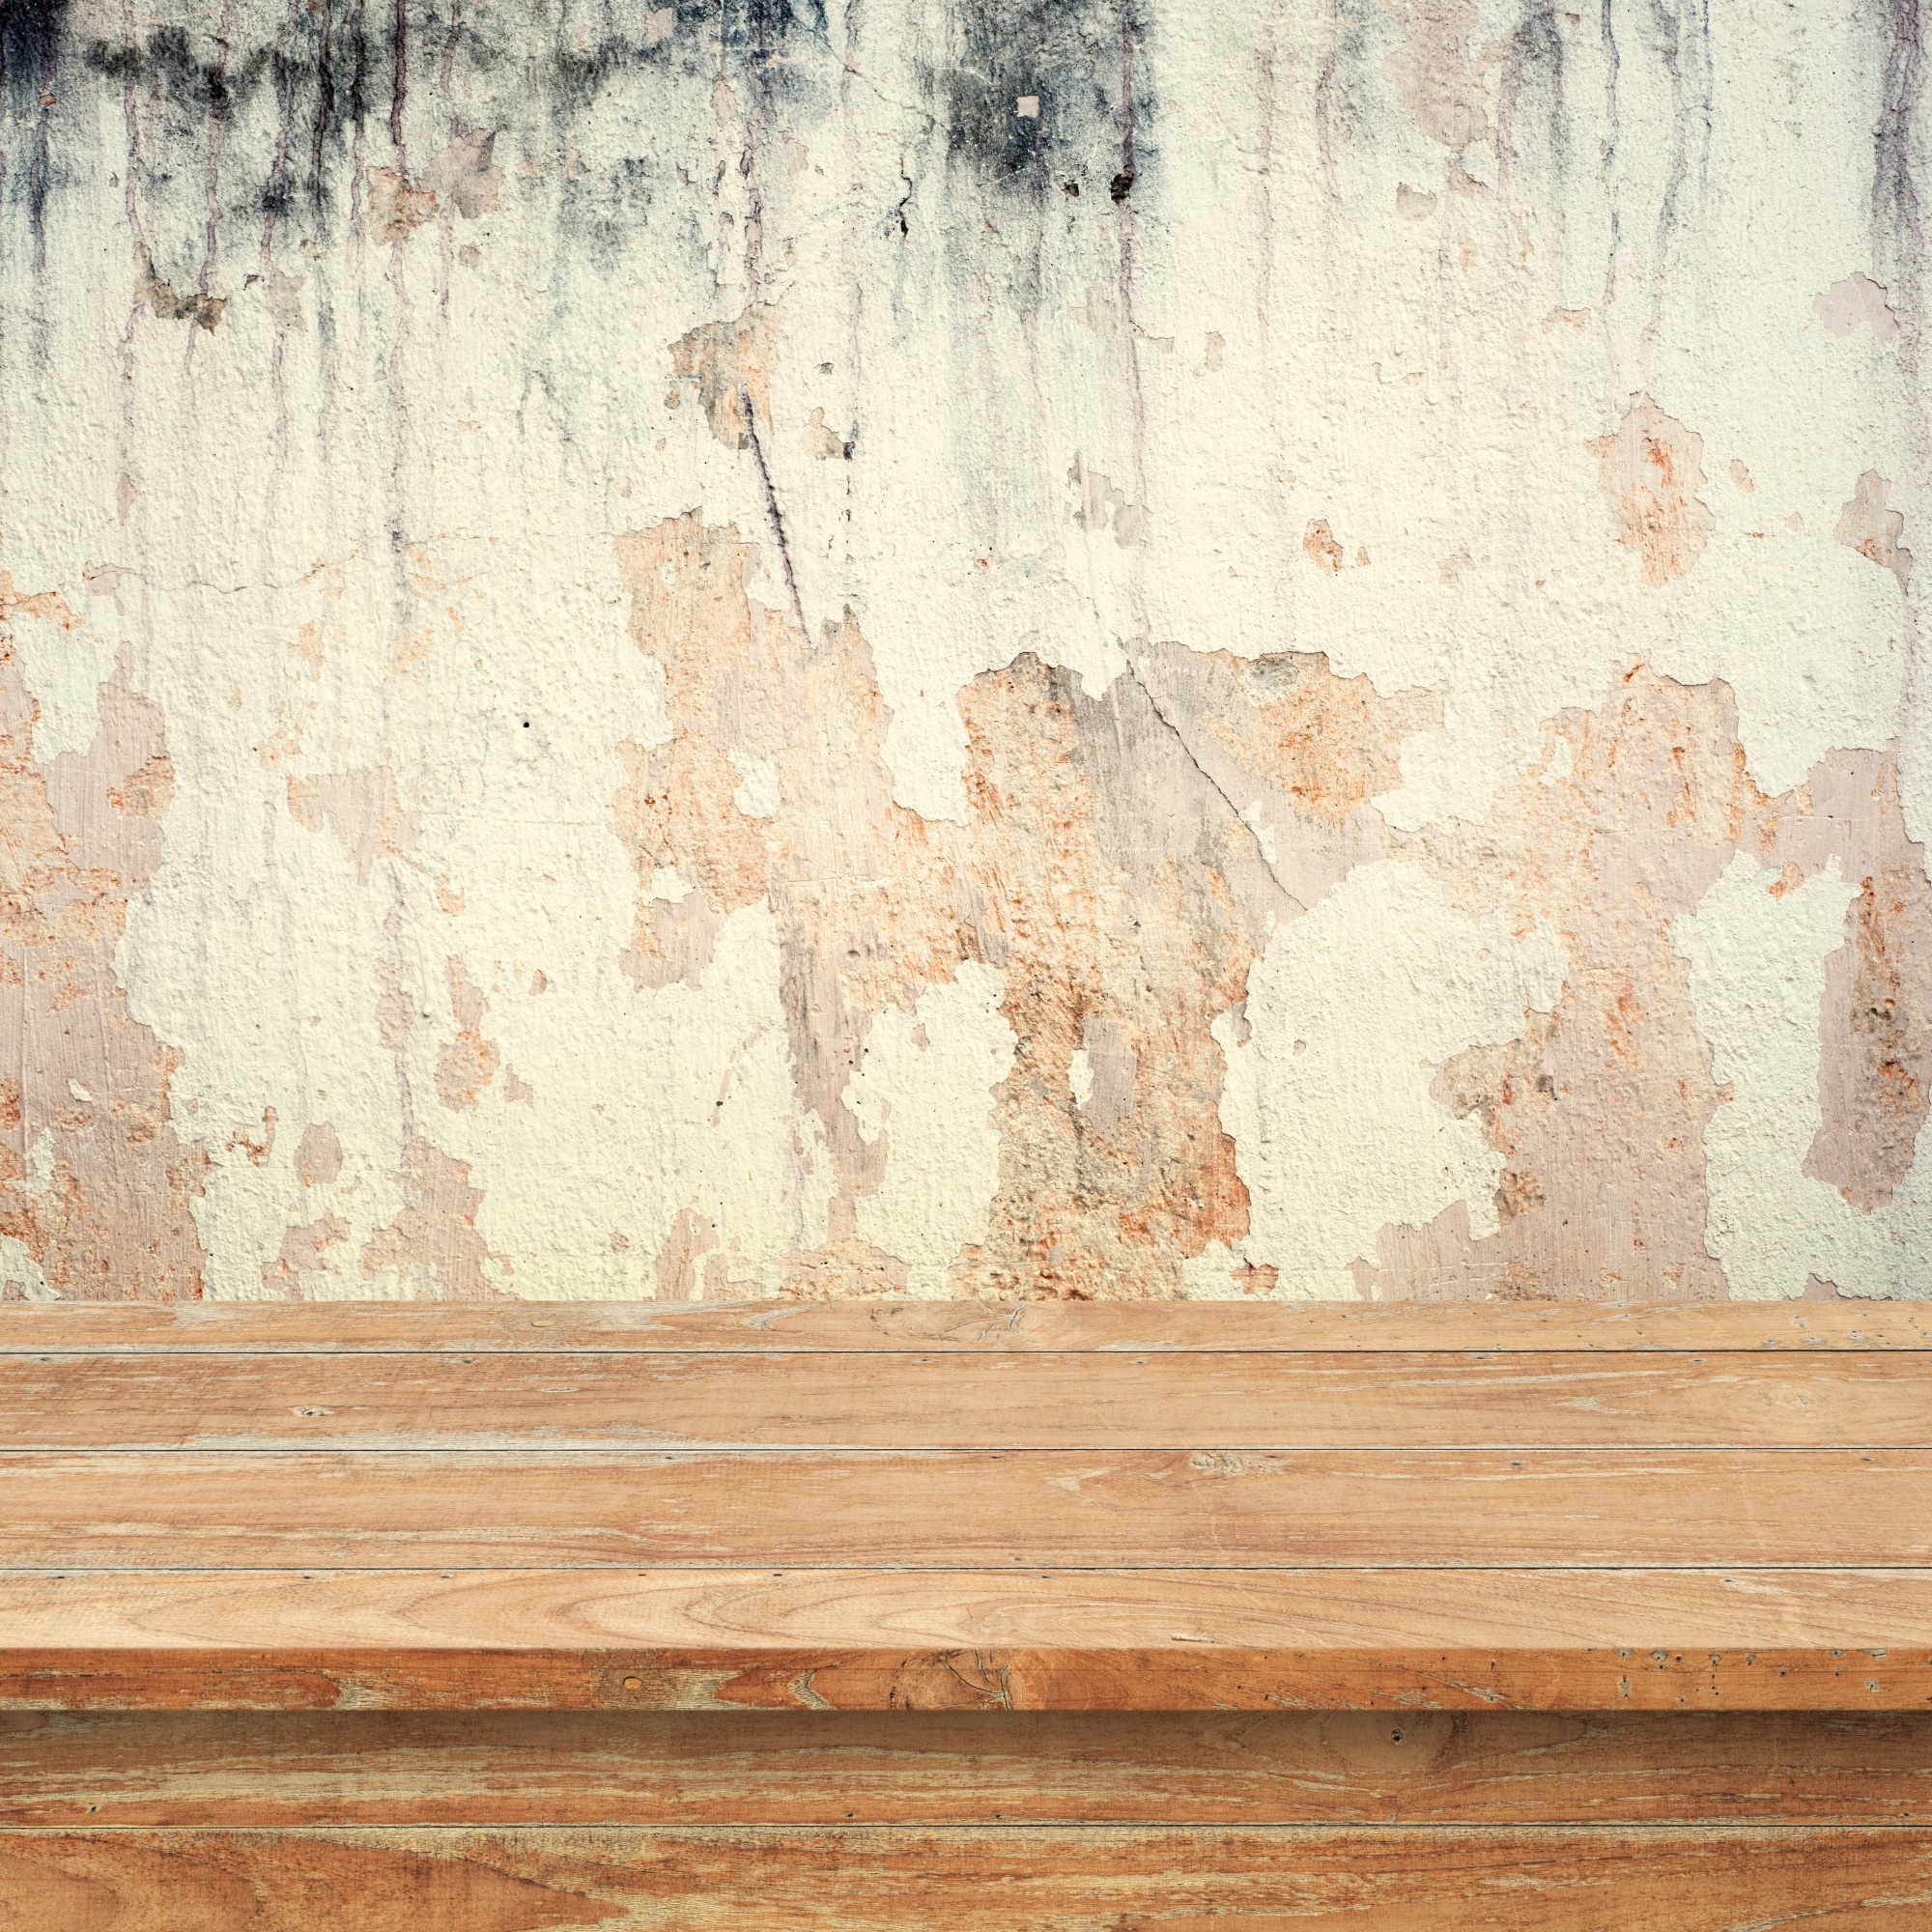 Empty top wood  shelves or table  on  concrete wall  background